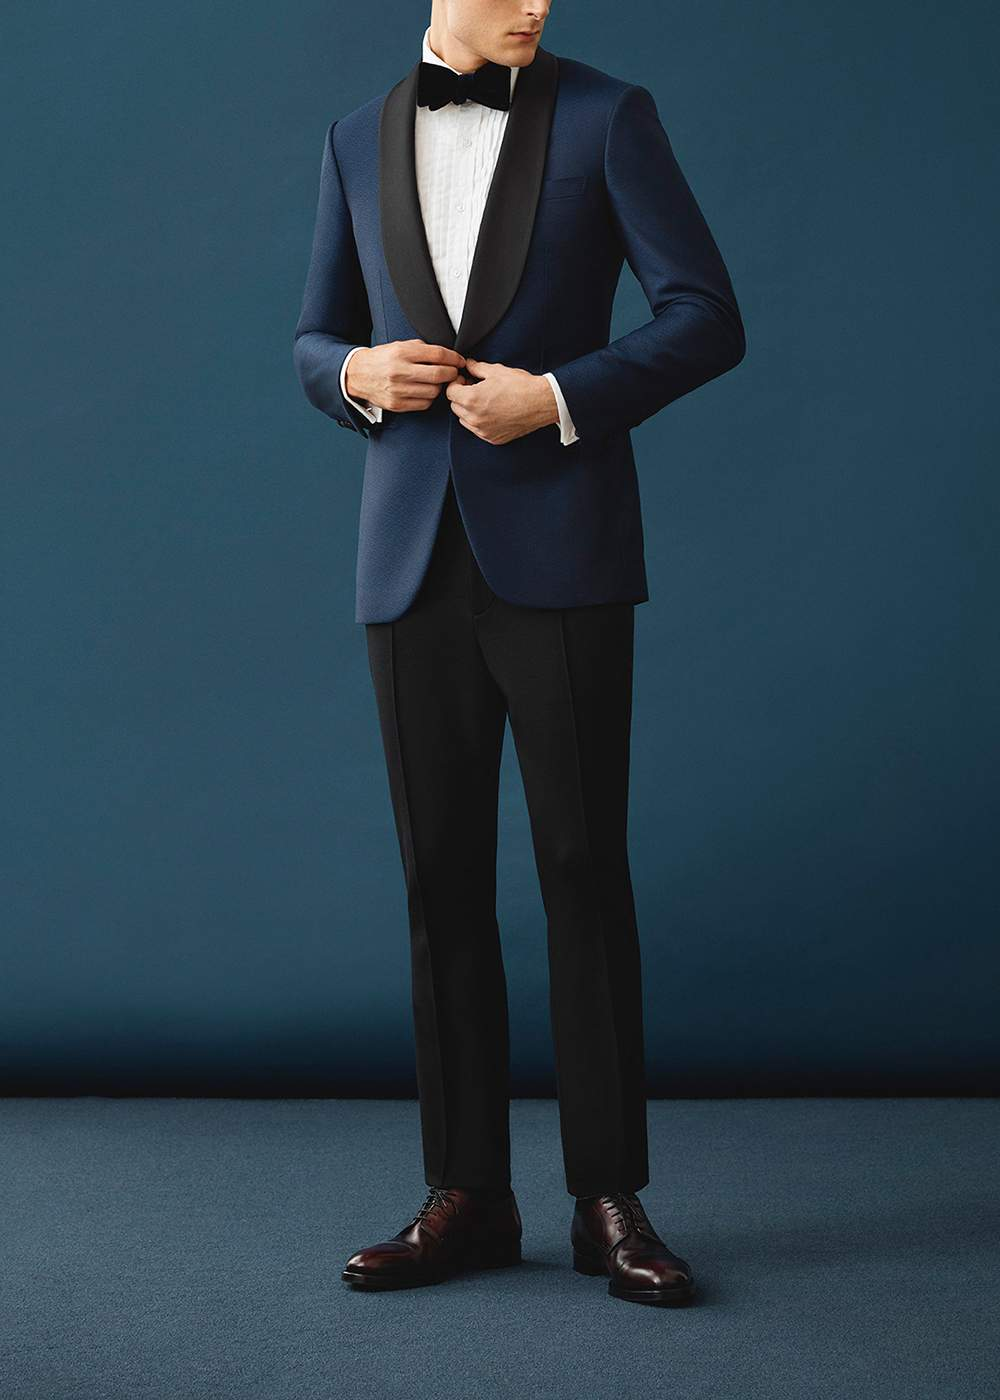 52c4cade9a43df The New Rules of Black Tie | Dress Code | The Journal | Issue 340 ...